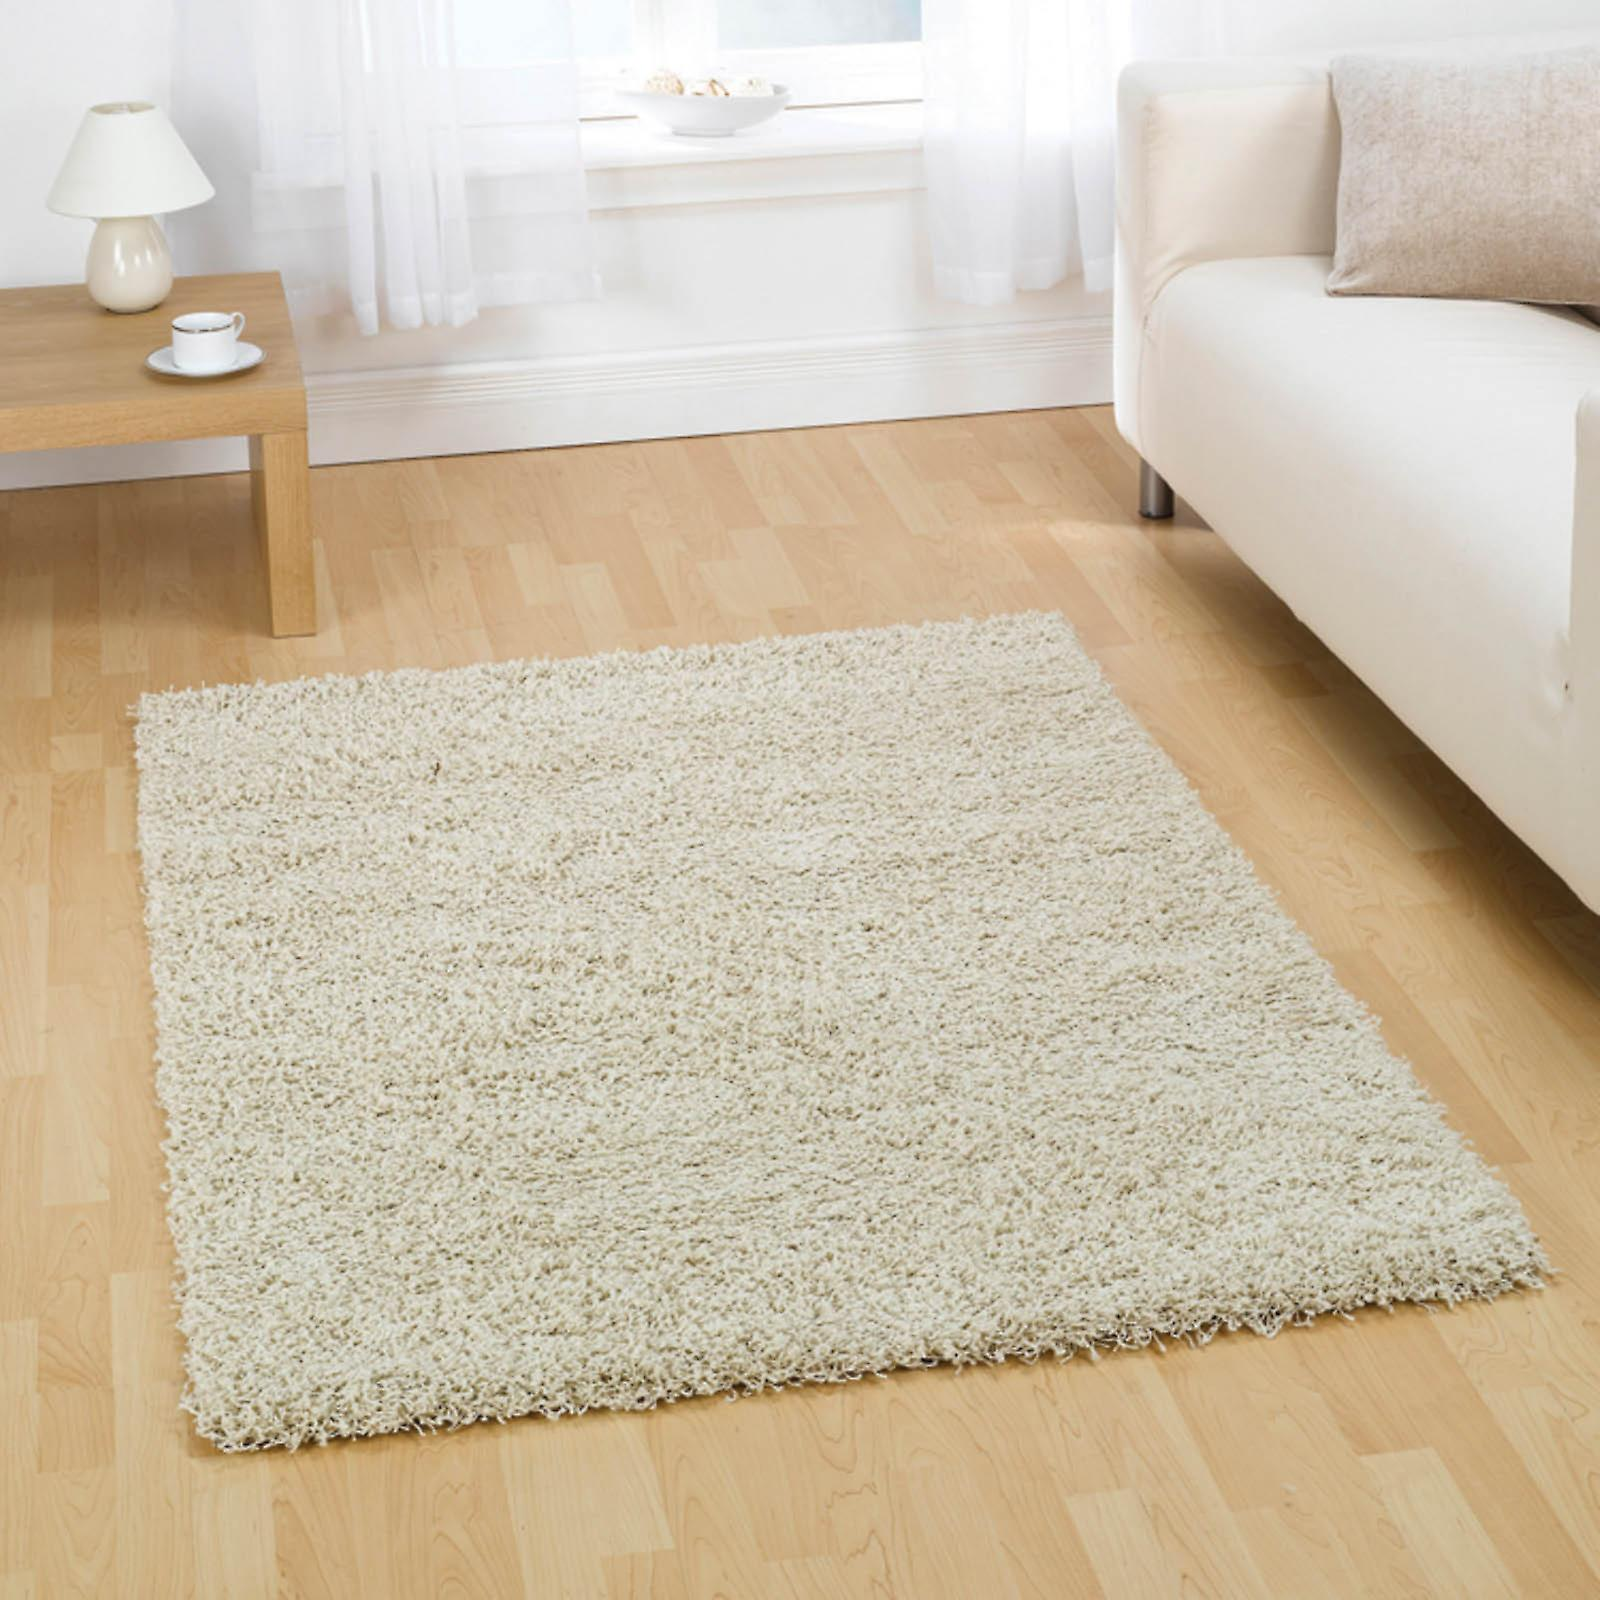 Cariboo Shaggy Rugs In Ivory